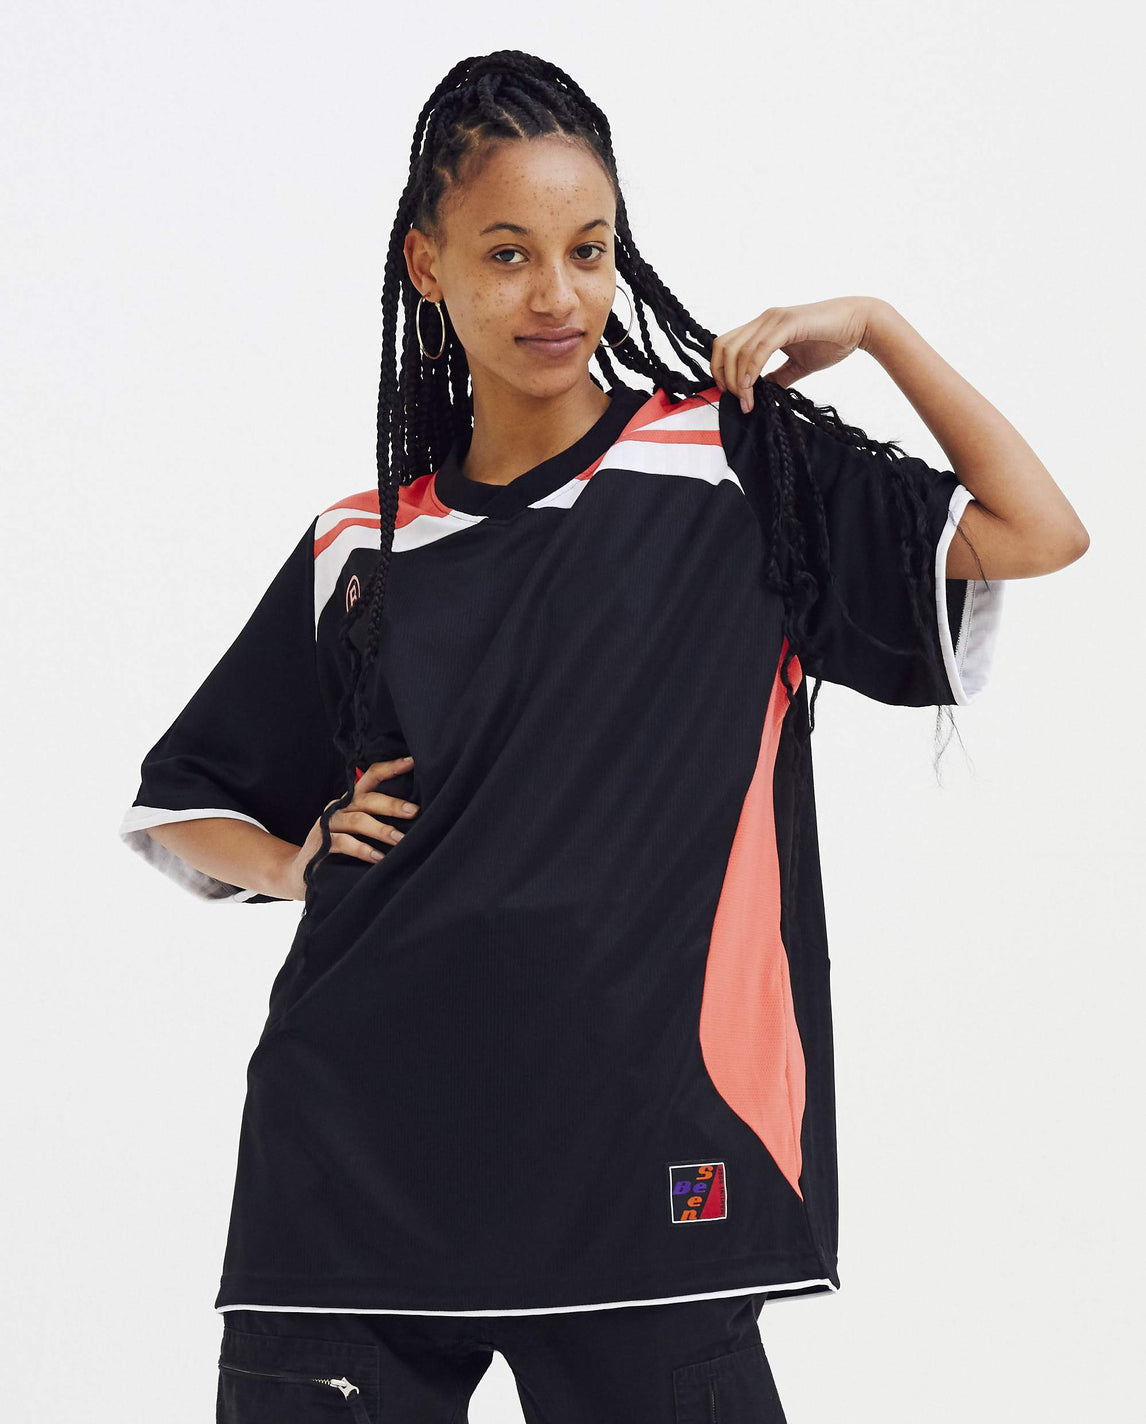 Two-Way Football Top - Black WOMENS MARTINE ROSE